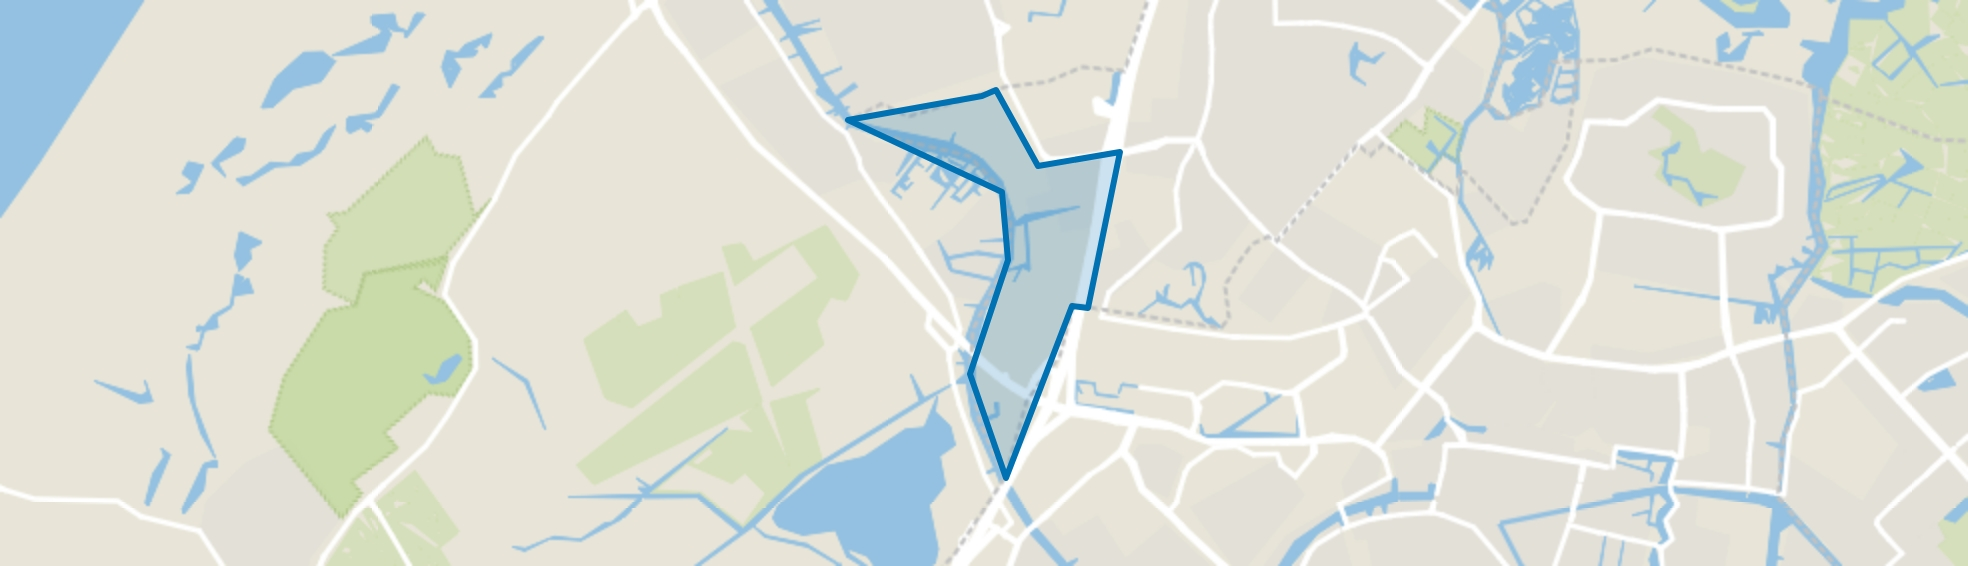 Rijnfront, Oegstgeest map